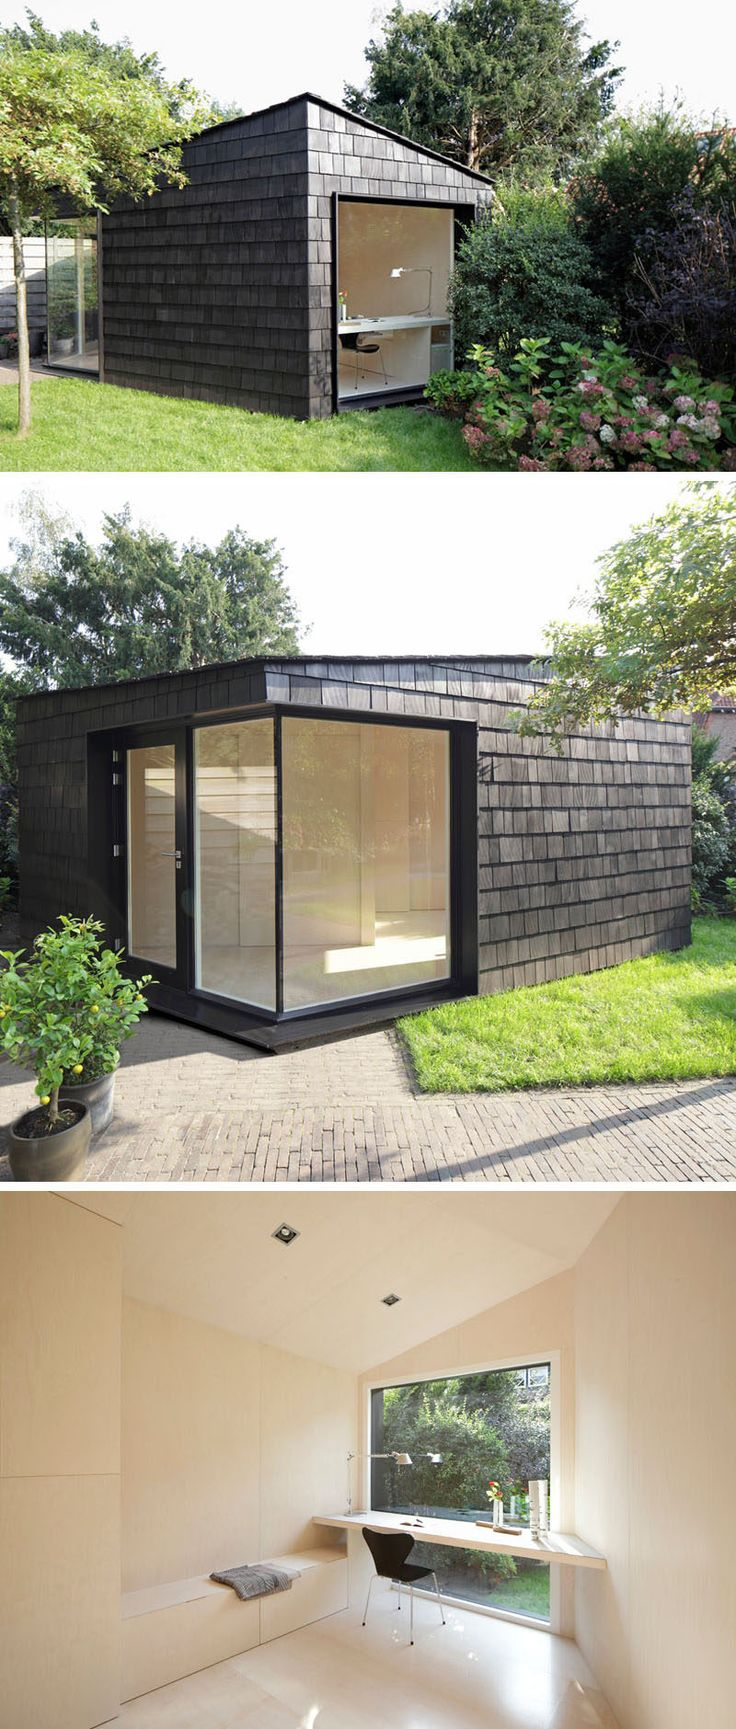 This backyard shed was created as a multi-functional space detached from the home that could be used as a storage shed for tools and bikes, a bright private home office, or a temporary guest room.